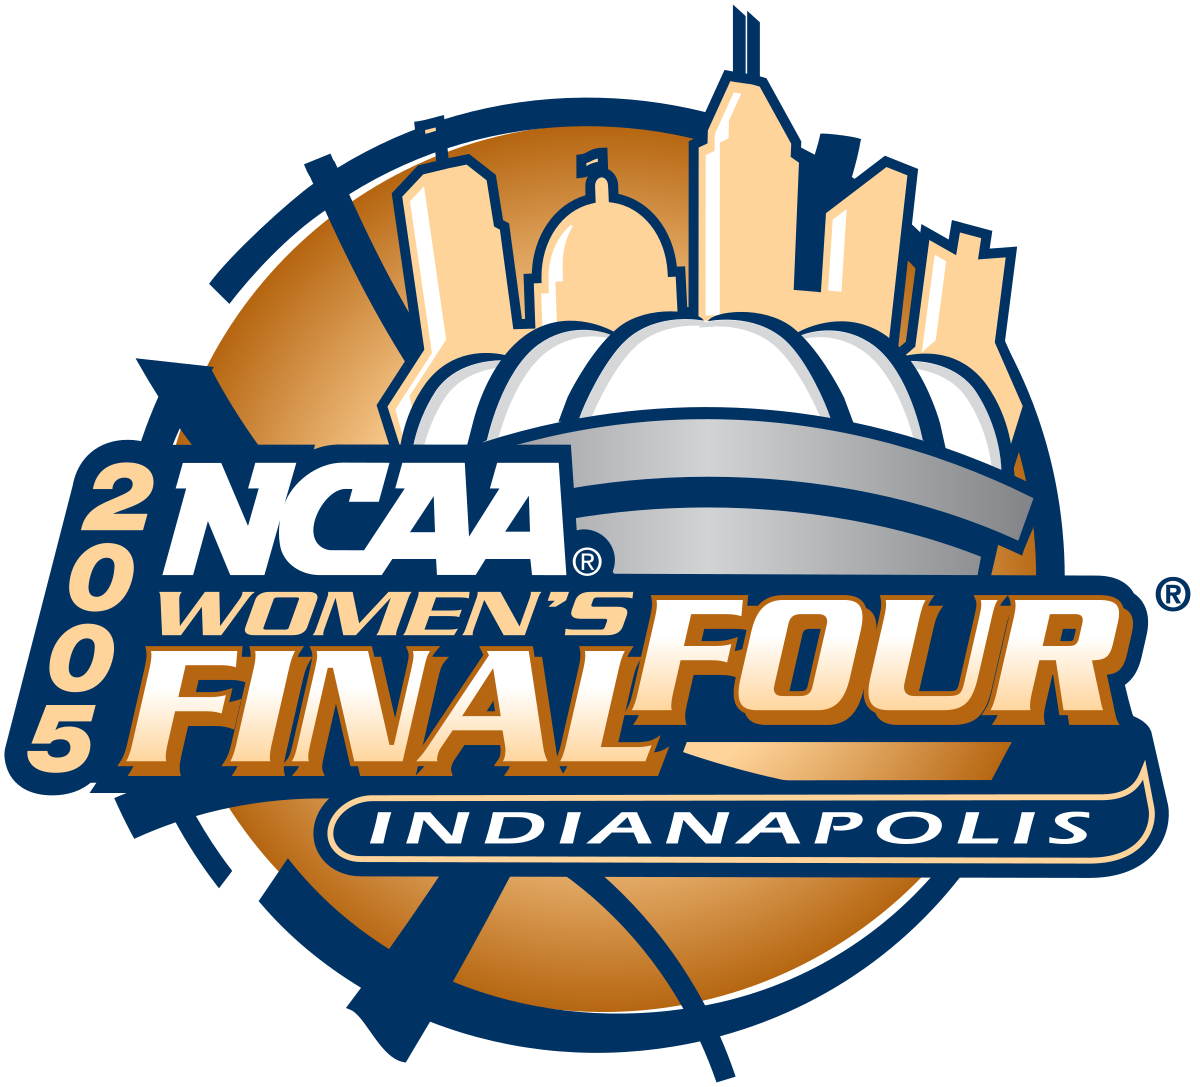 Basketball champions logo clipart vector freeuse download 2005 NCAA Division I Women's Basketball Tournament - Wikipedia vector freeuse download